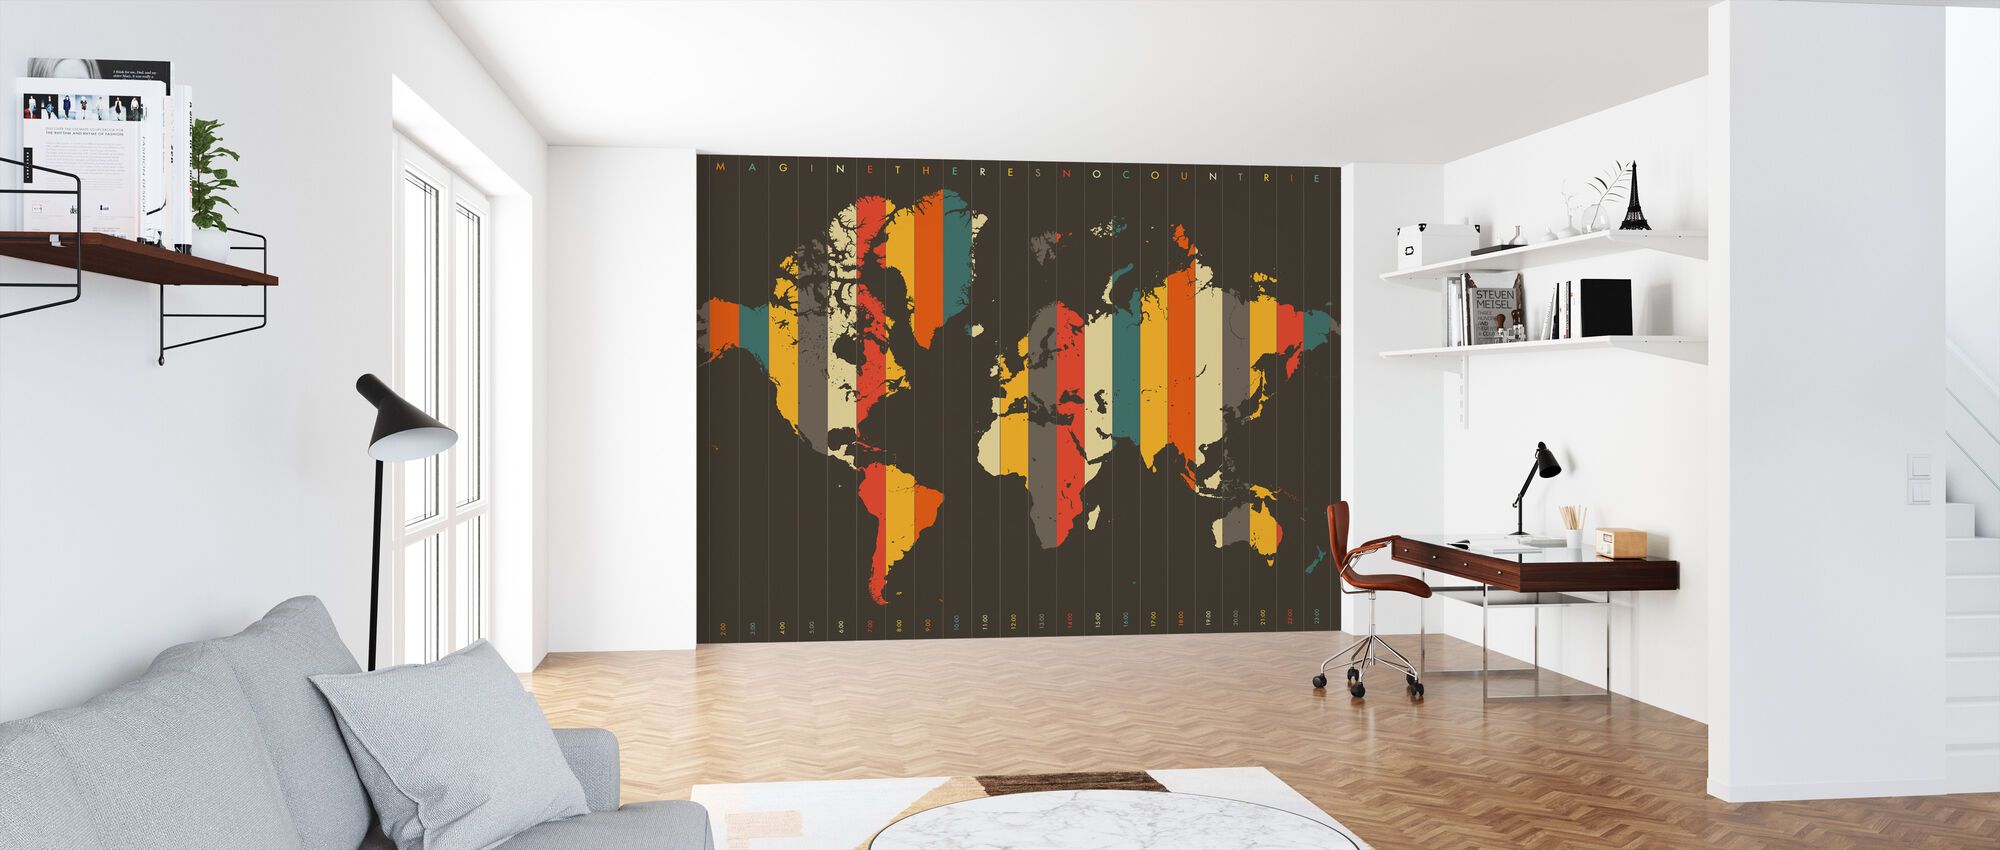 Imagine Theres No Countries - Brown - Wallpaper - Office